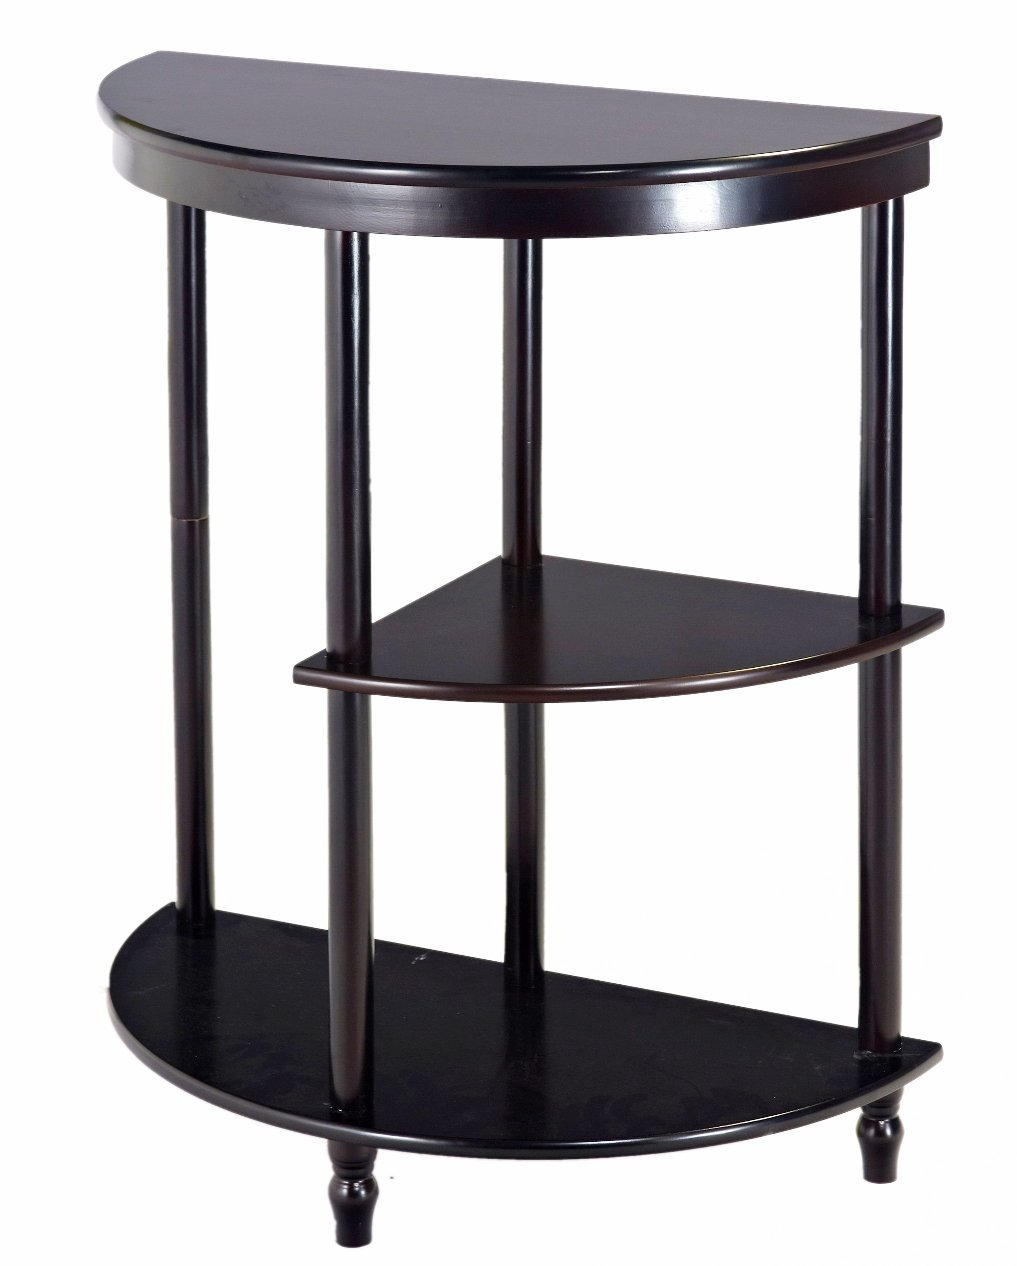 Exceptionnel Frenchi Furniture Cherry 3 Tier Crescent ,Half Moon ,Hall / Console Table/End  Table   Walmart.com